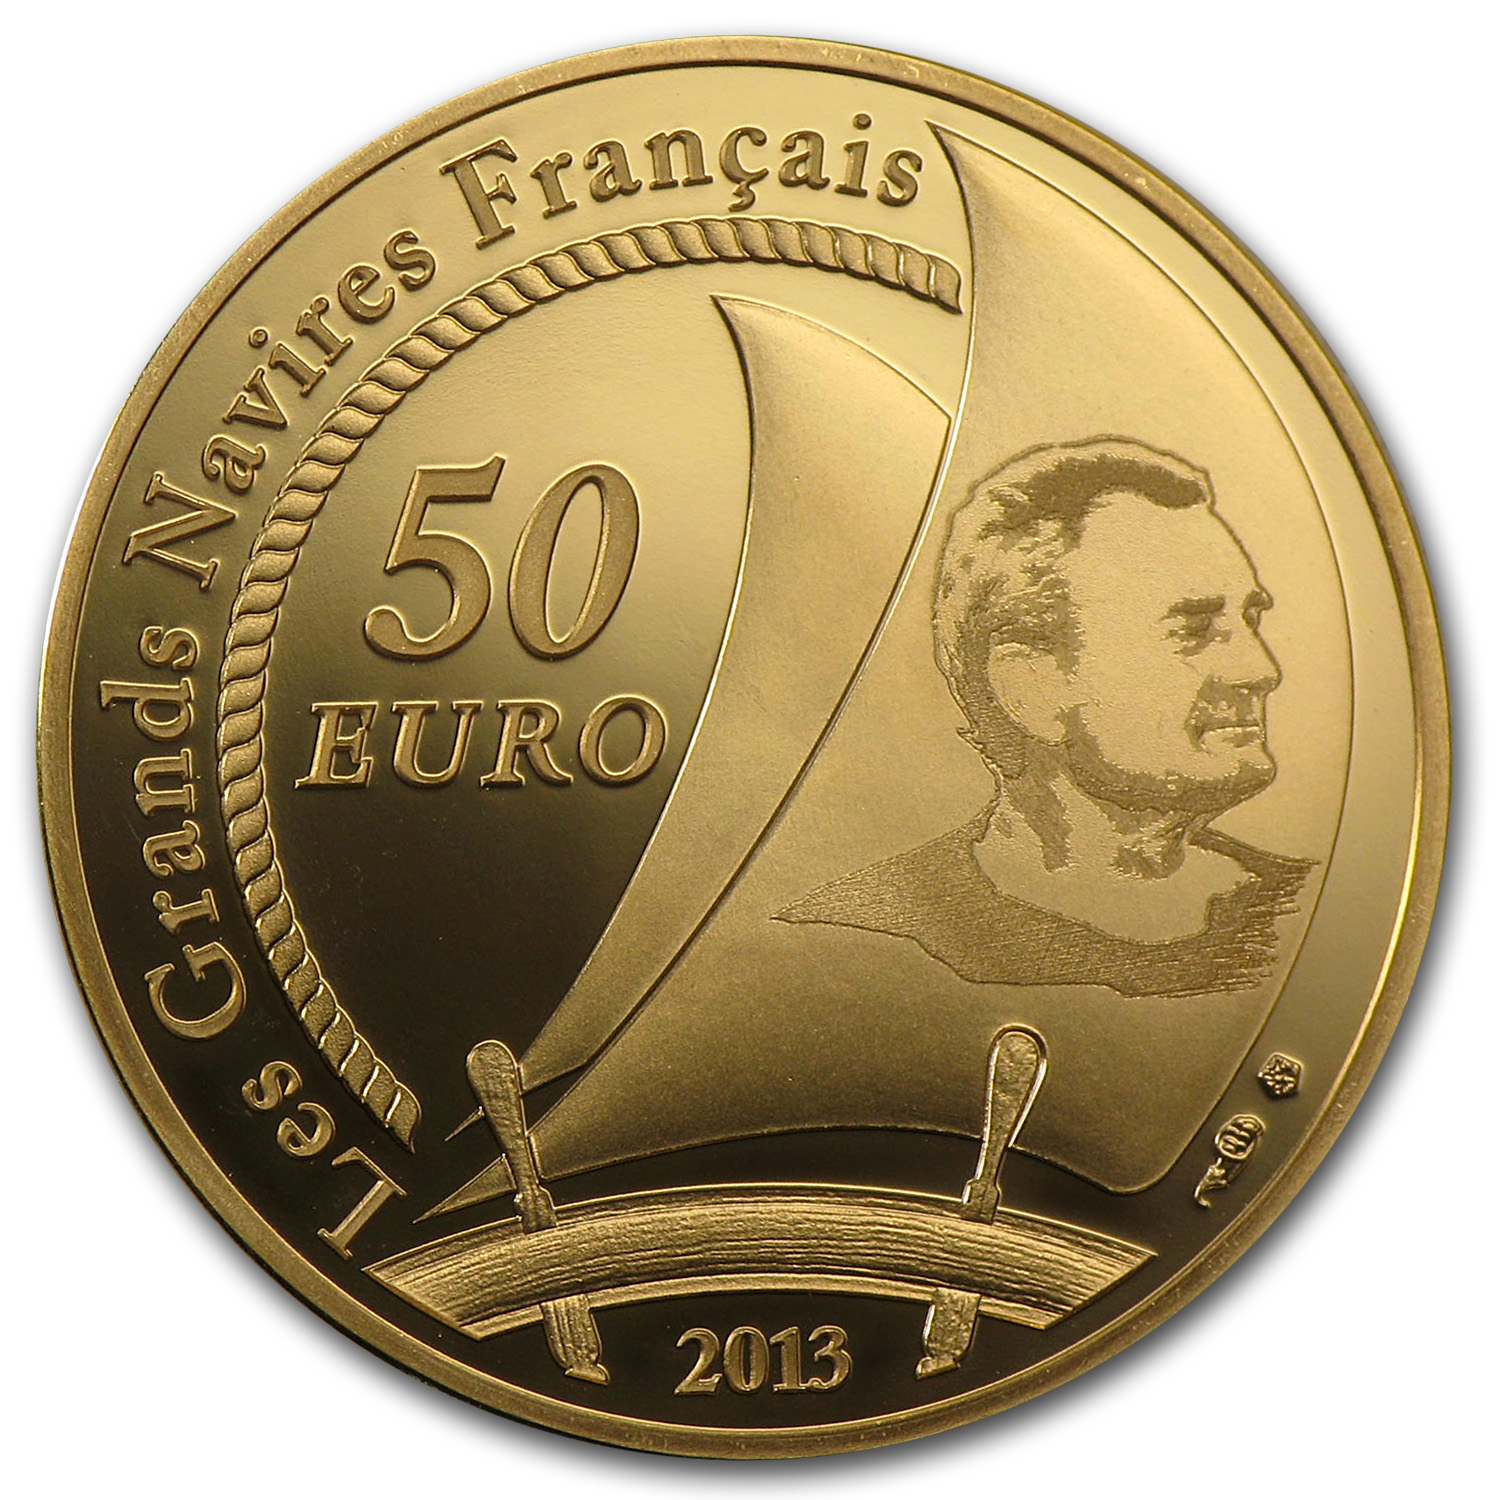 2013 1/4 oz Proof Gold €50 Great French Ships Pen Duick